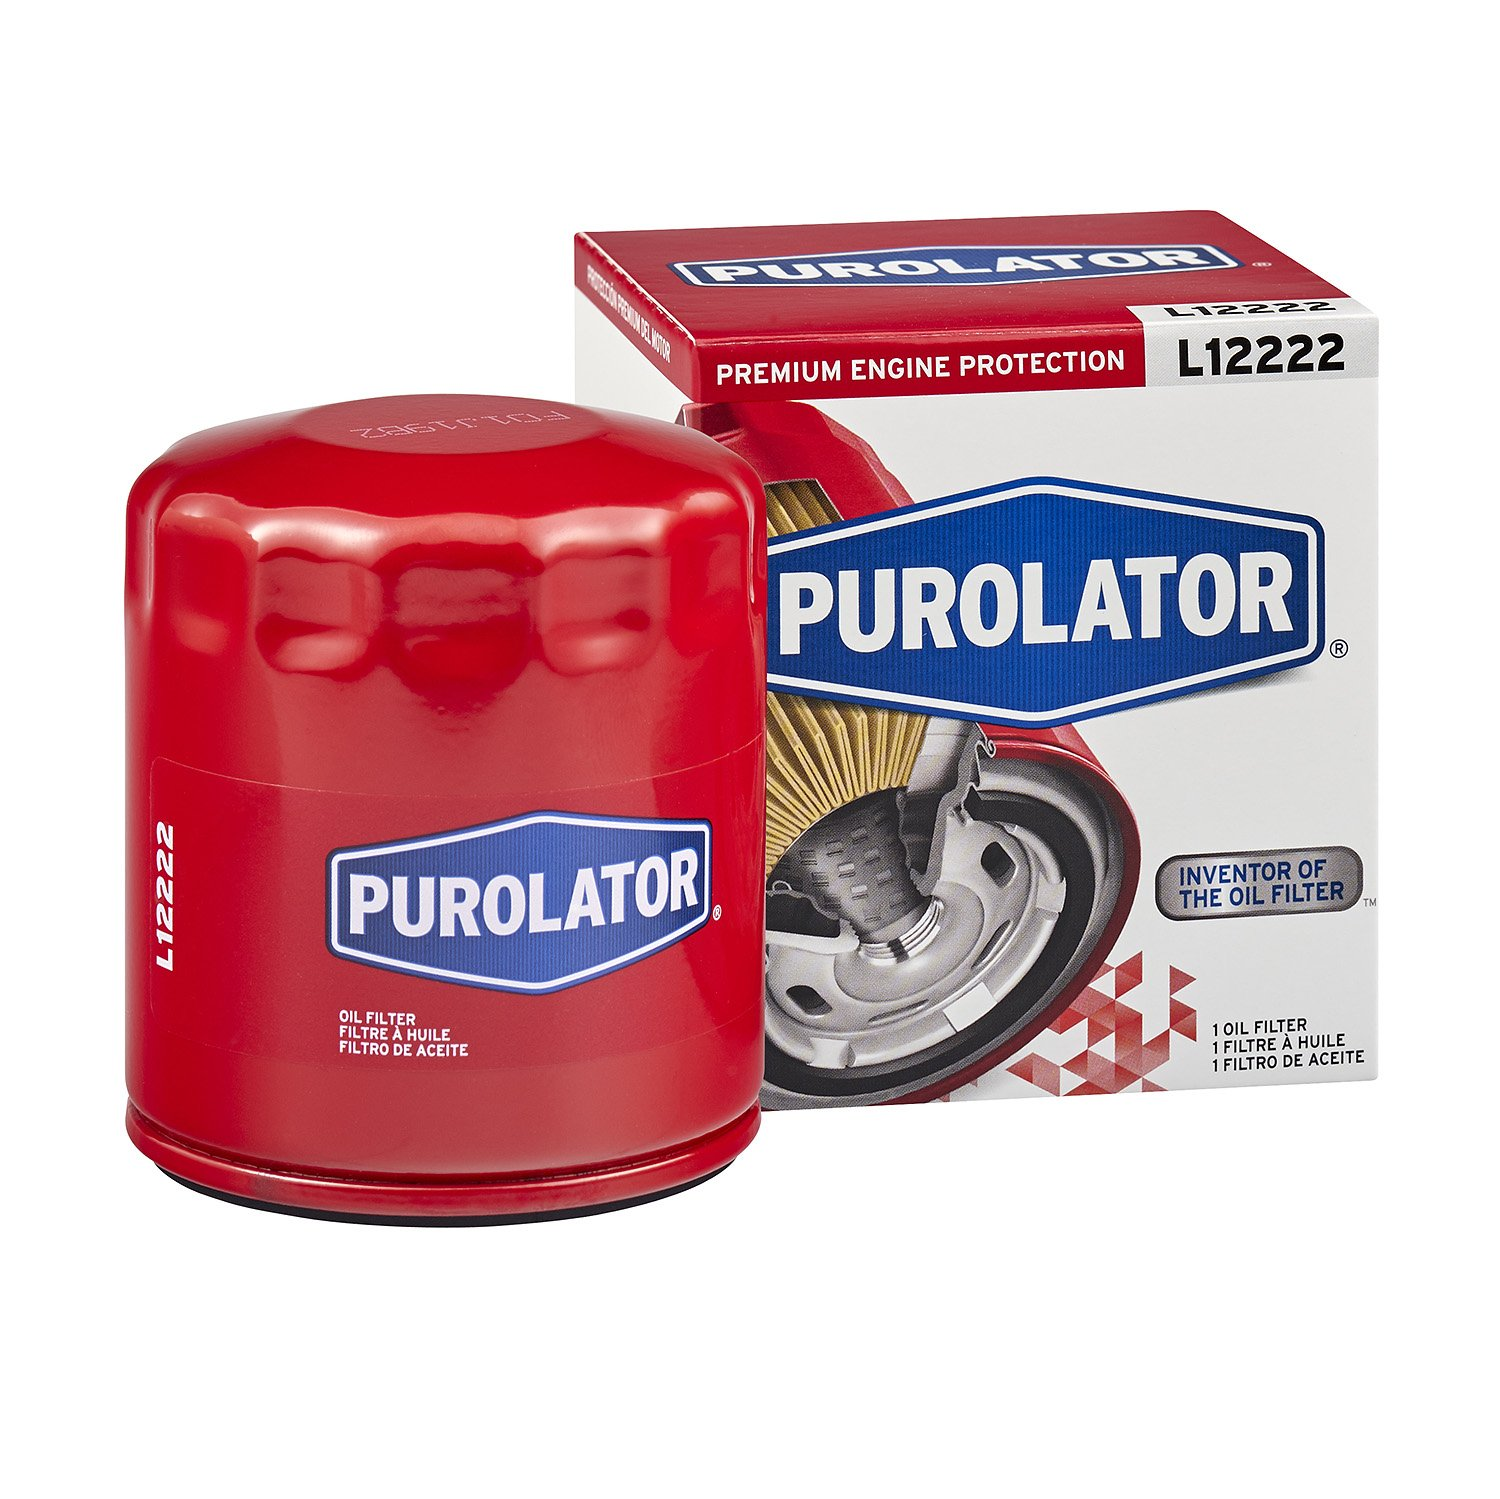 Purolator L12222 Purolator Oil Filter